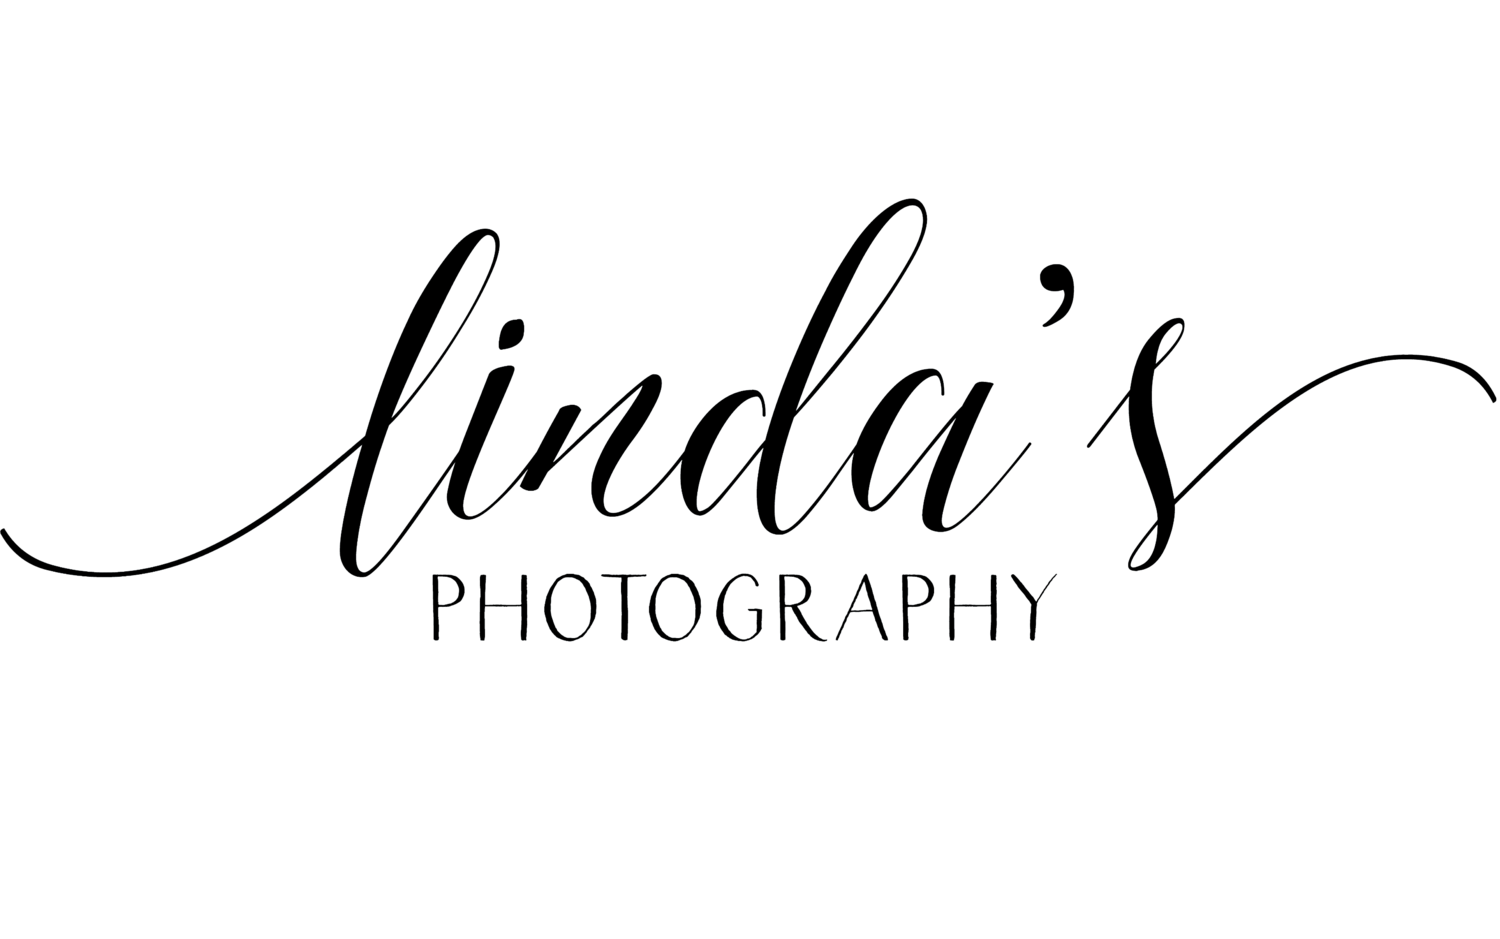 Linda's Photography